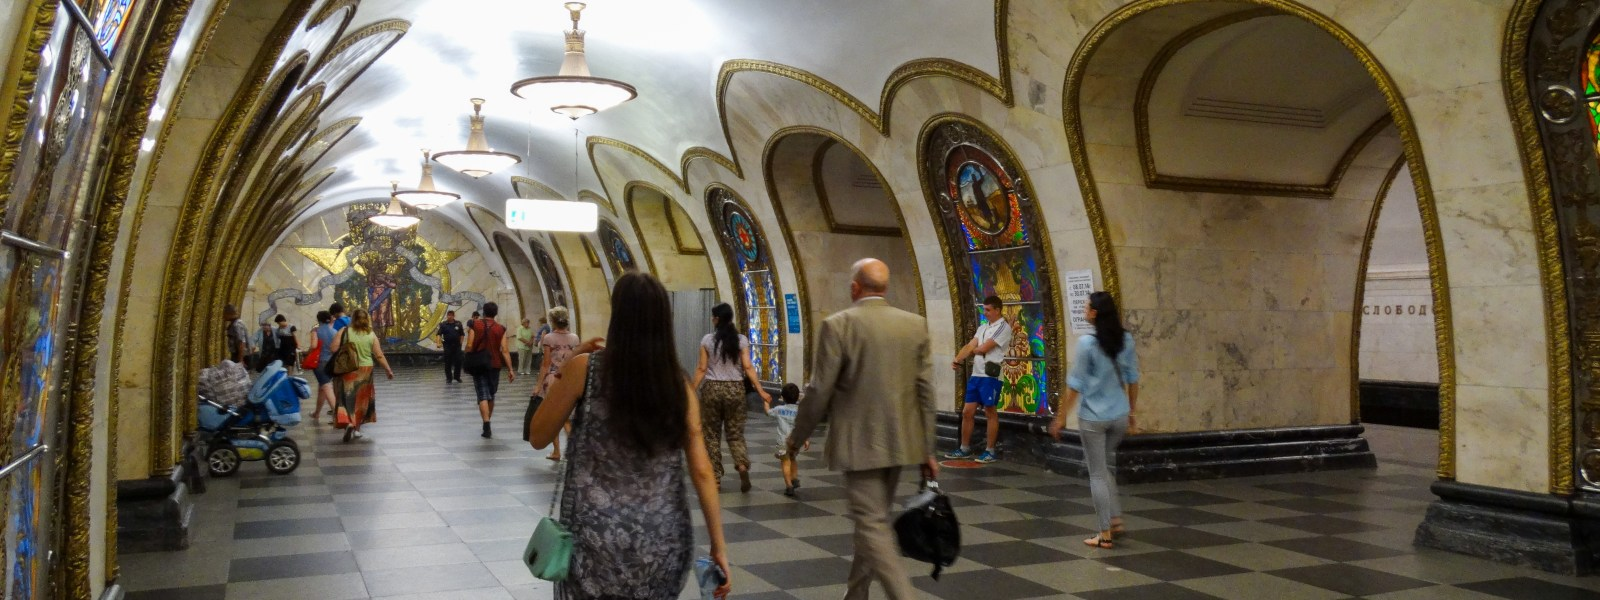 The underground palaces of the Moscow metro